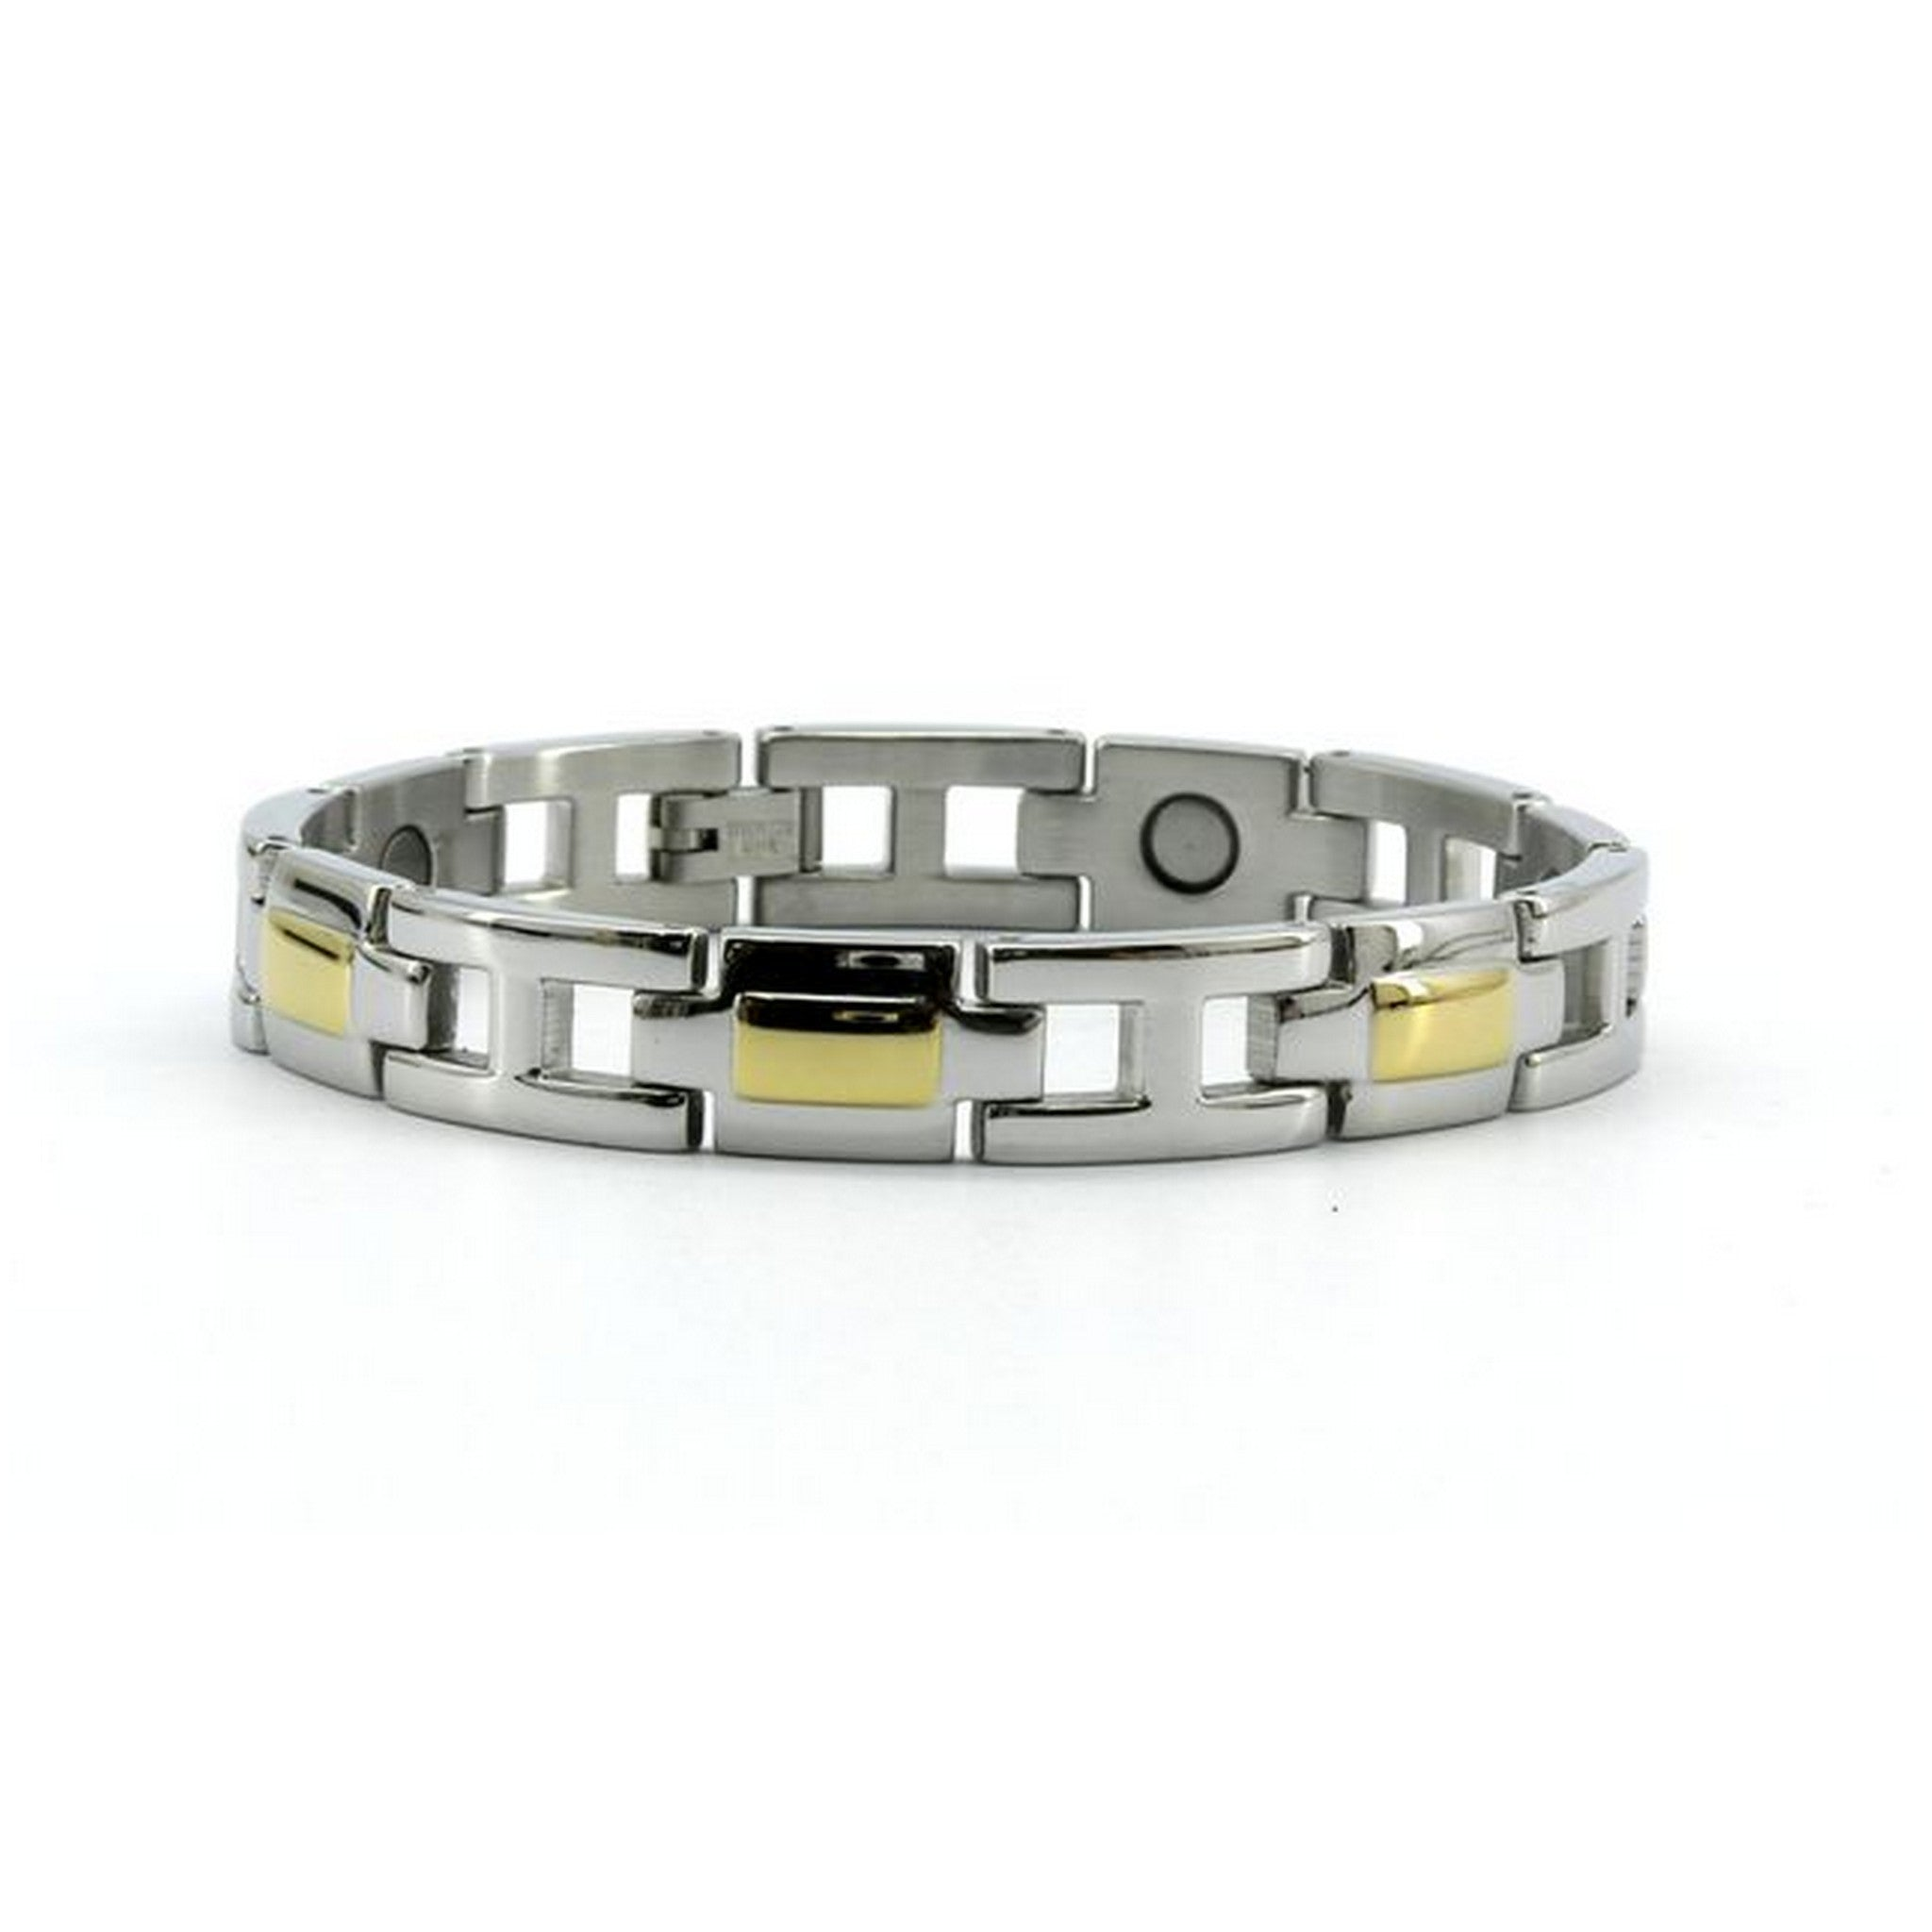 Magnetic Stainless Link Health Bracelet High Polish Silver & Gold Colour, 3000 Gauss